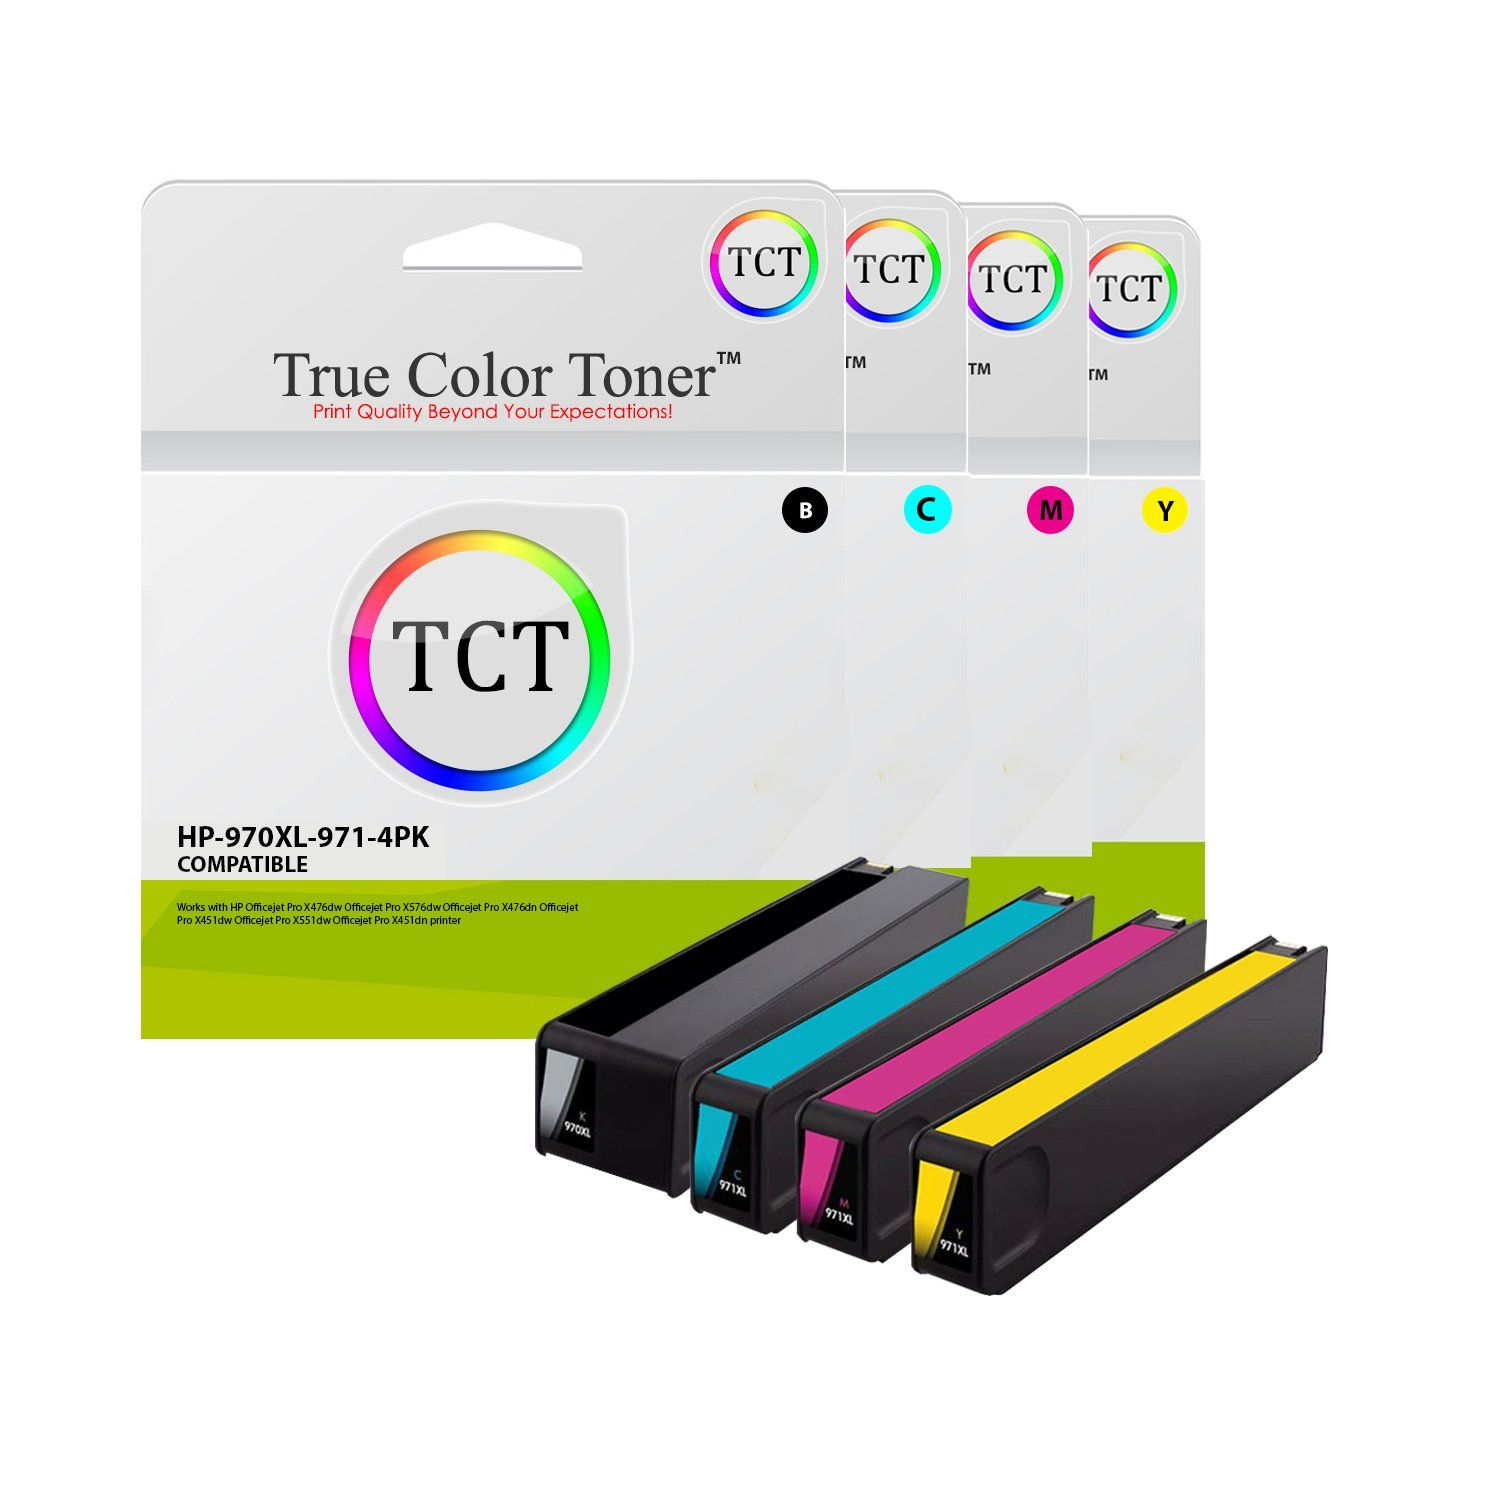 Tct Compatible Ink Cartridge Replacement Hp 970xl 971xl Works With Hp Officejet Pro X451dn X451dw Ink Cartridge Color Cartridges Cartridges